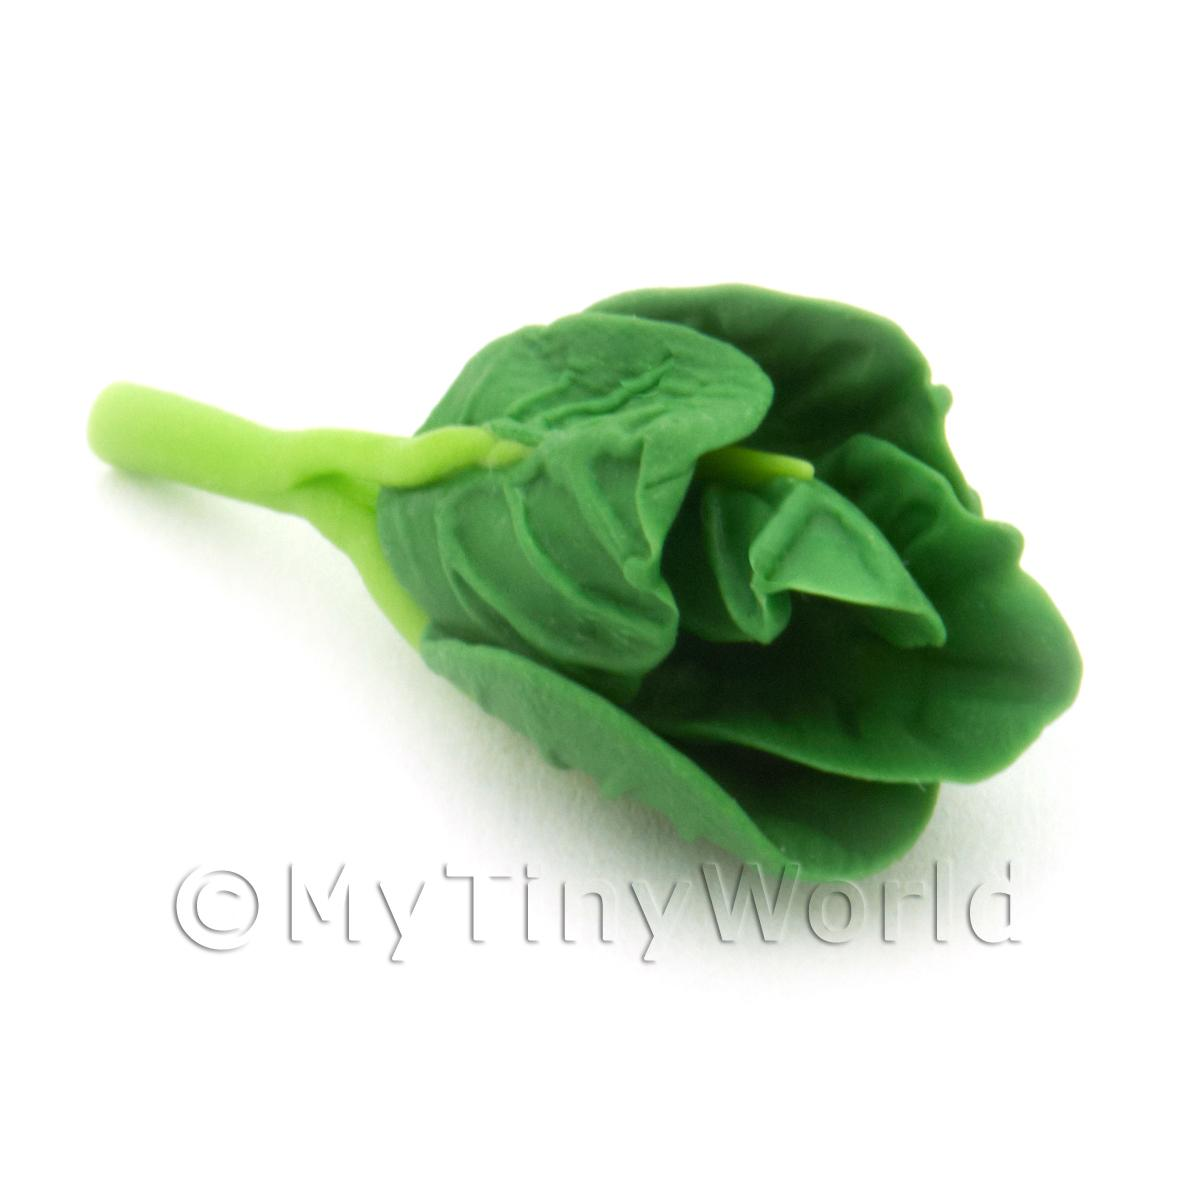 Dolls House Miniature Vegetable Greens Stem